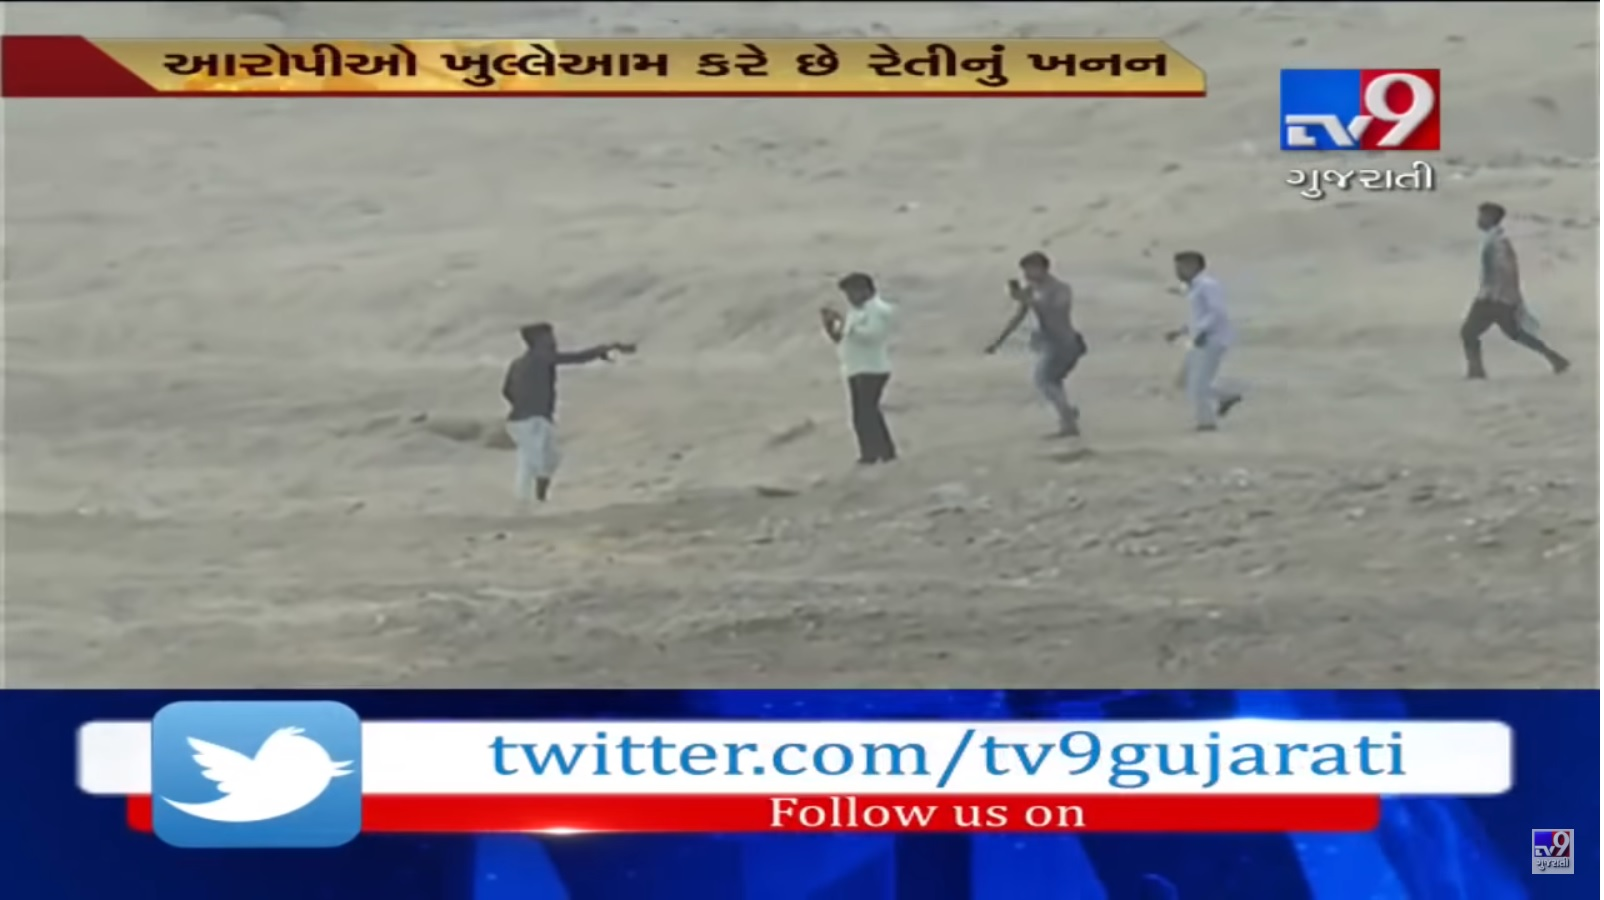 Chhota Udaipur: Sand mafias pelted stones at coal and mine dept officials, absconded